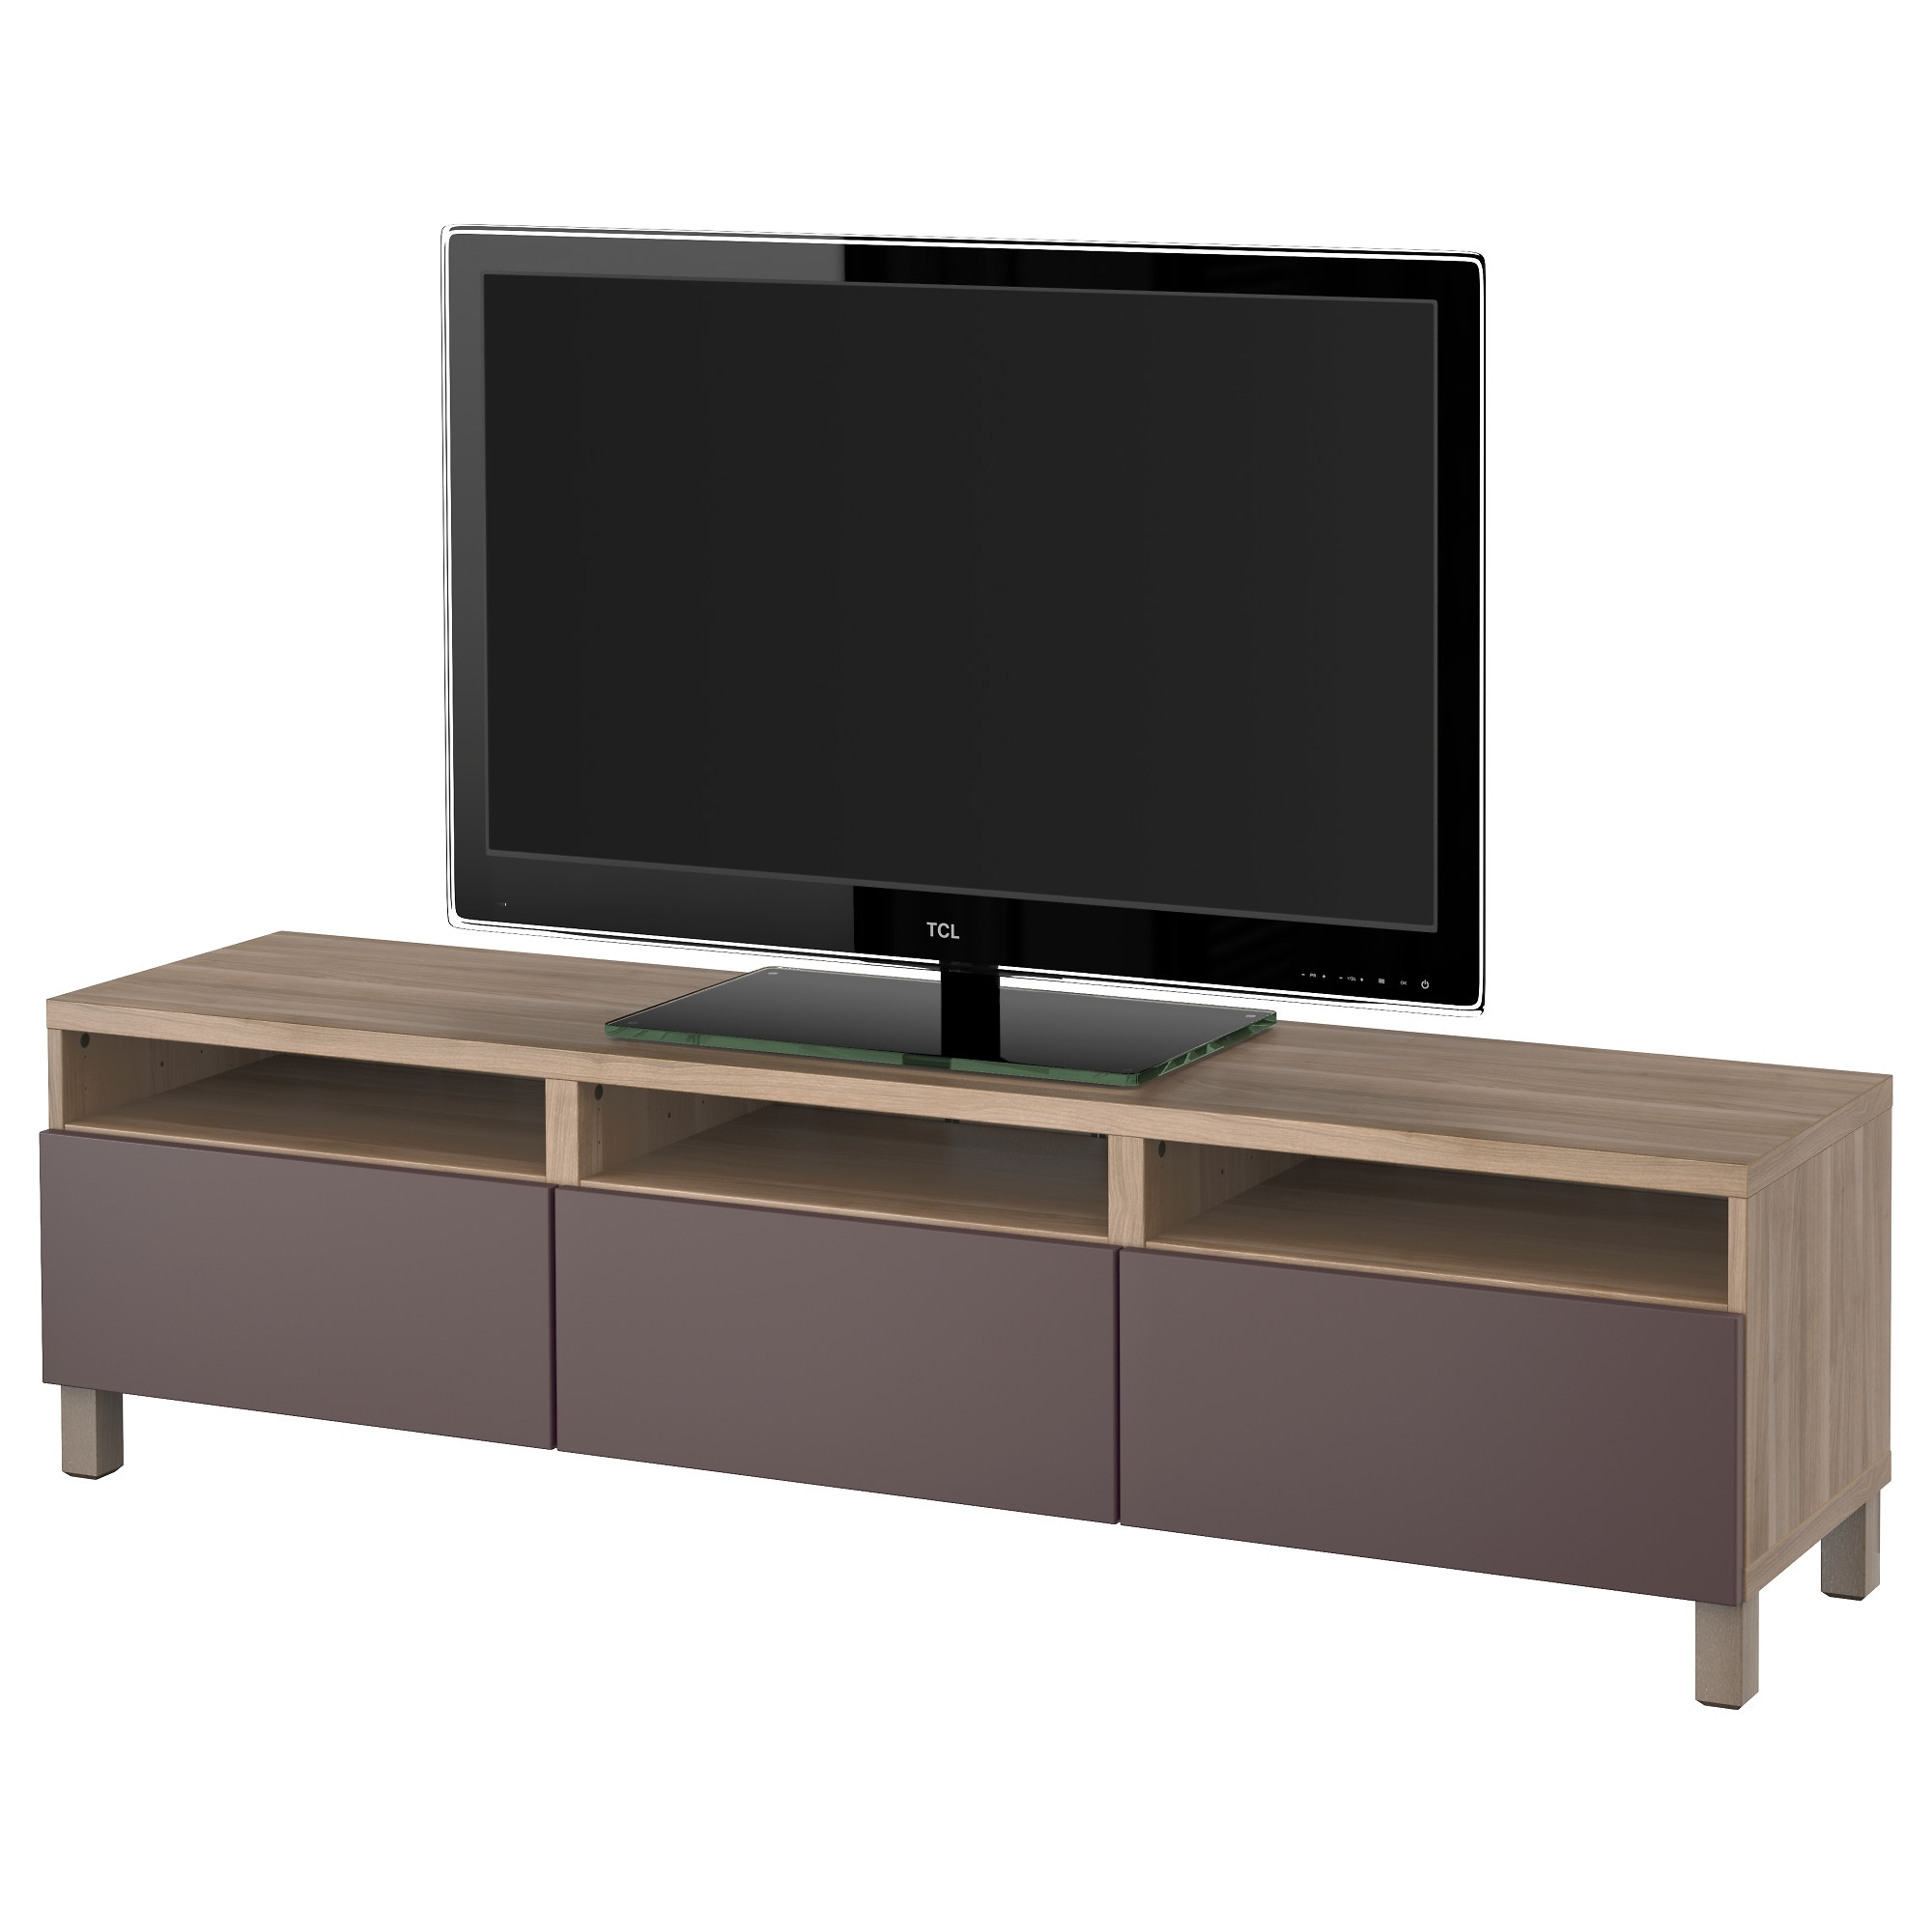 Ikea meuble tv blanc ensemble meuble tv ikea medium size - Muebles tv ikea ...